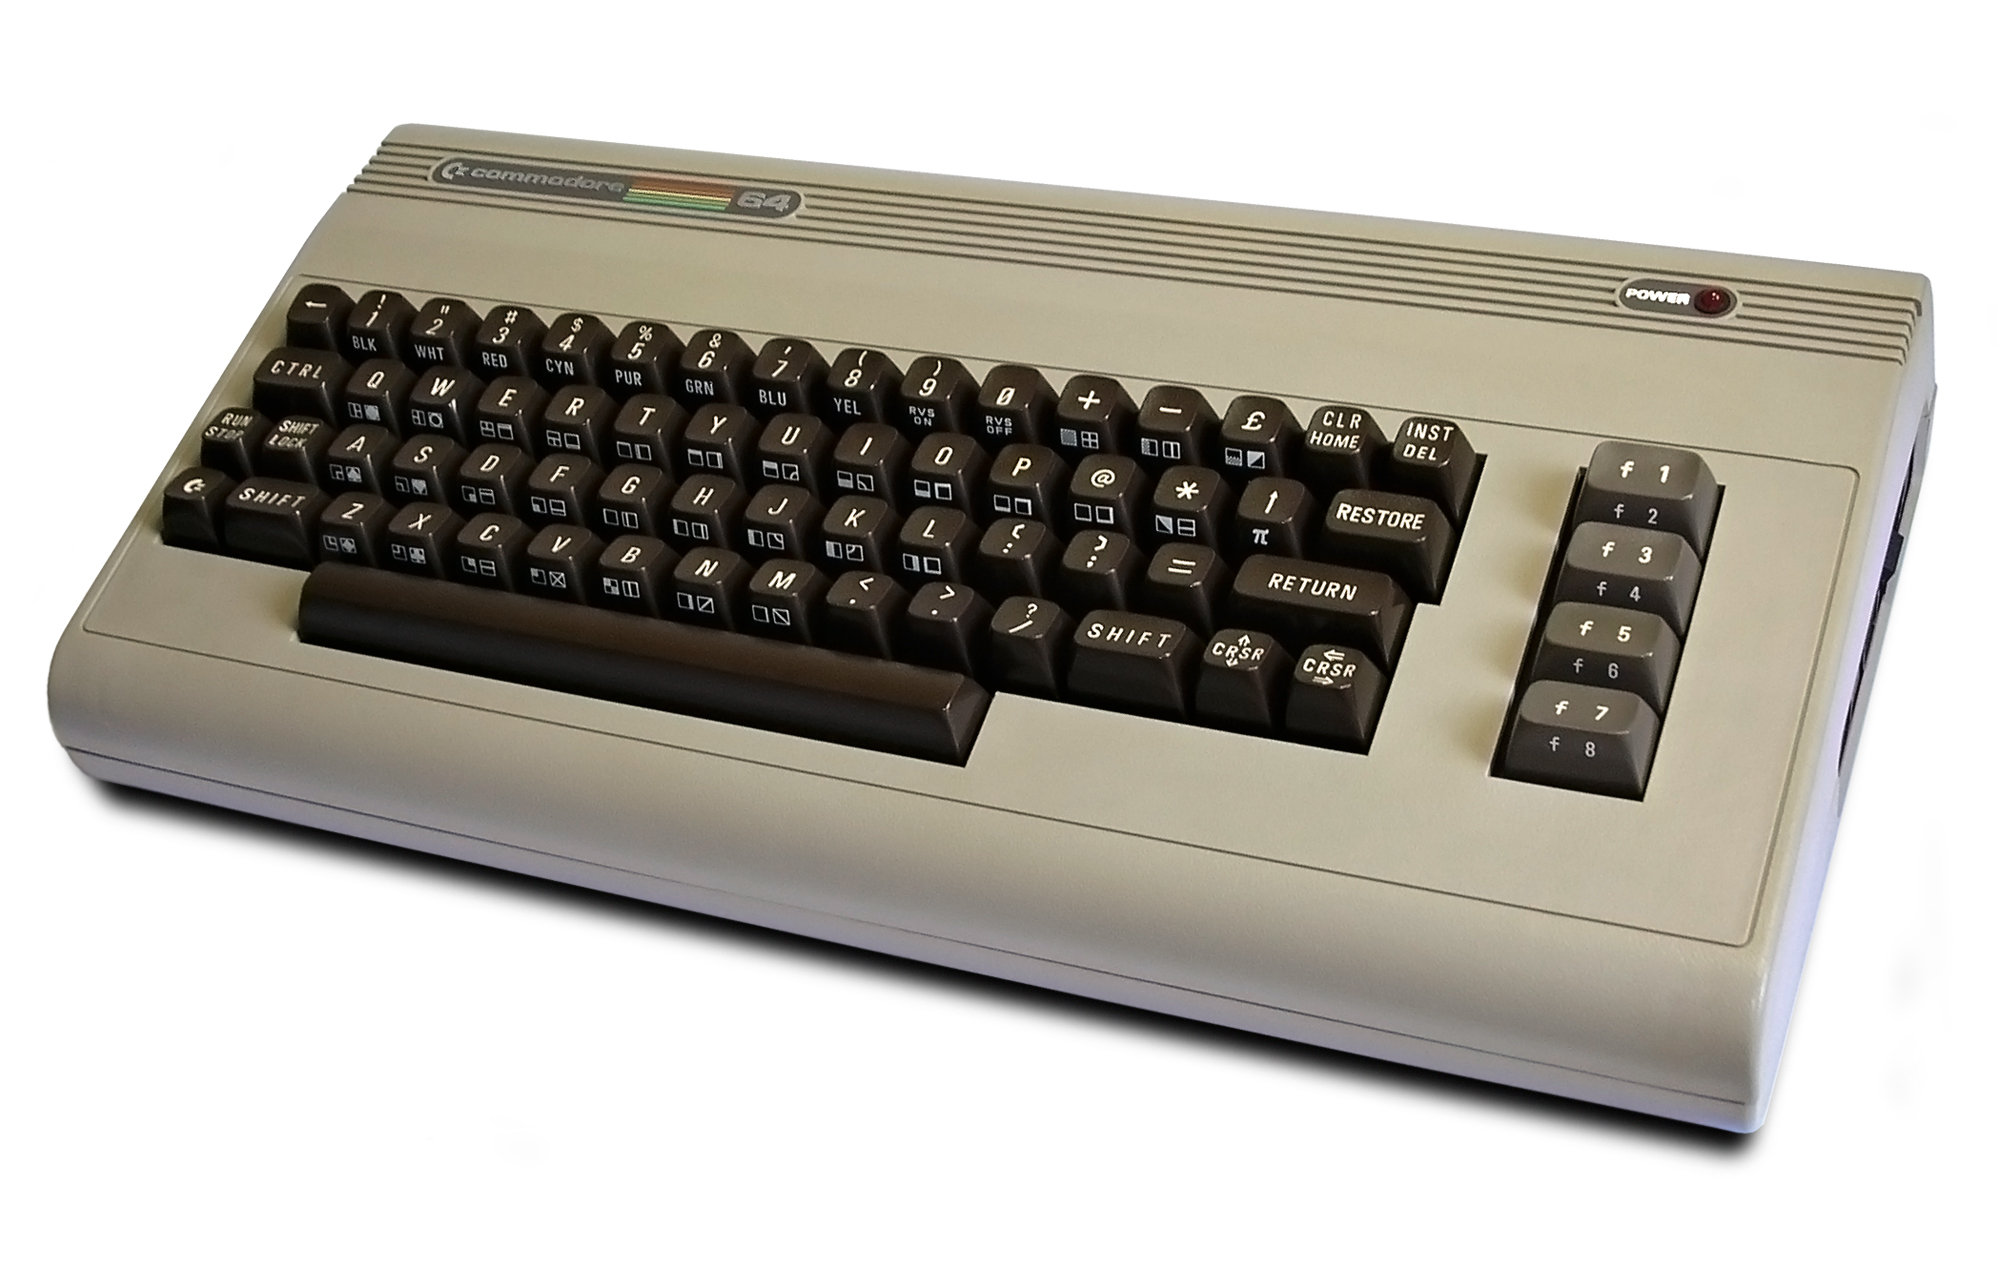 Commodore 64 (CD64)